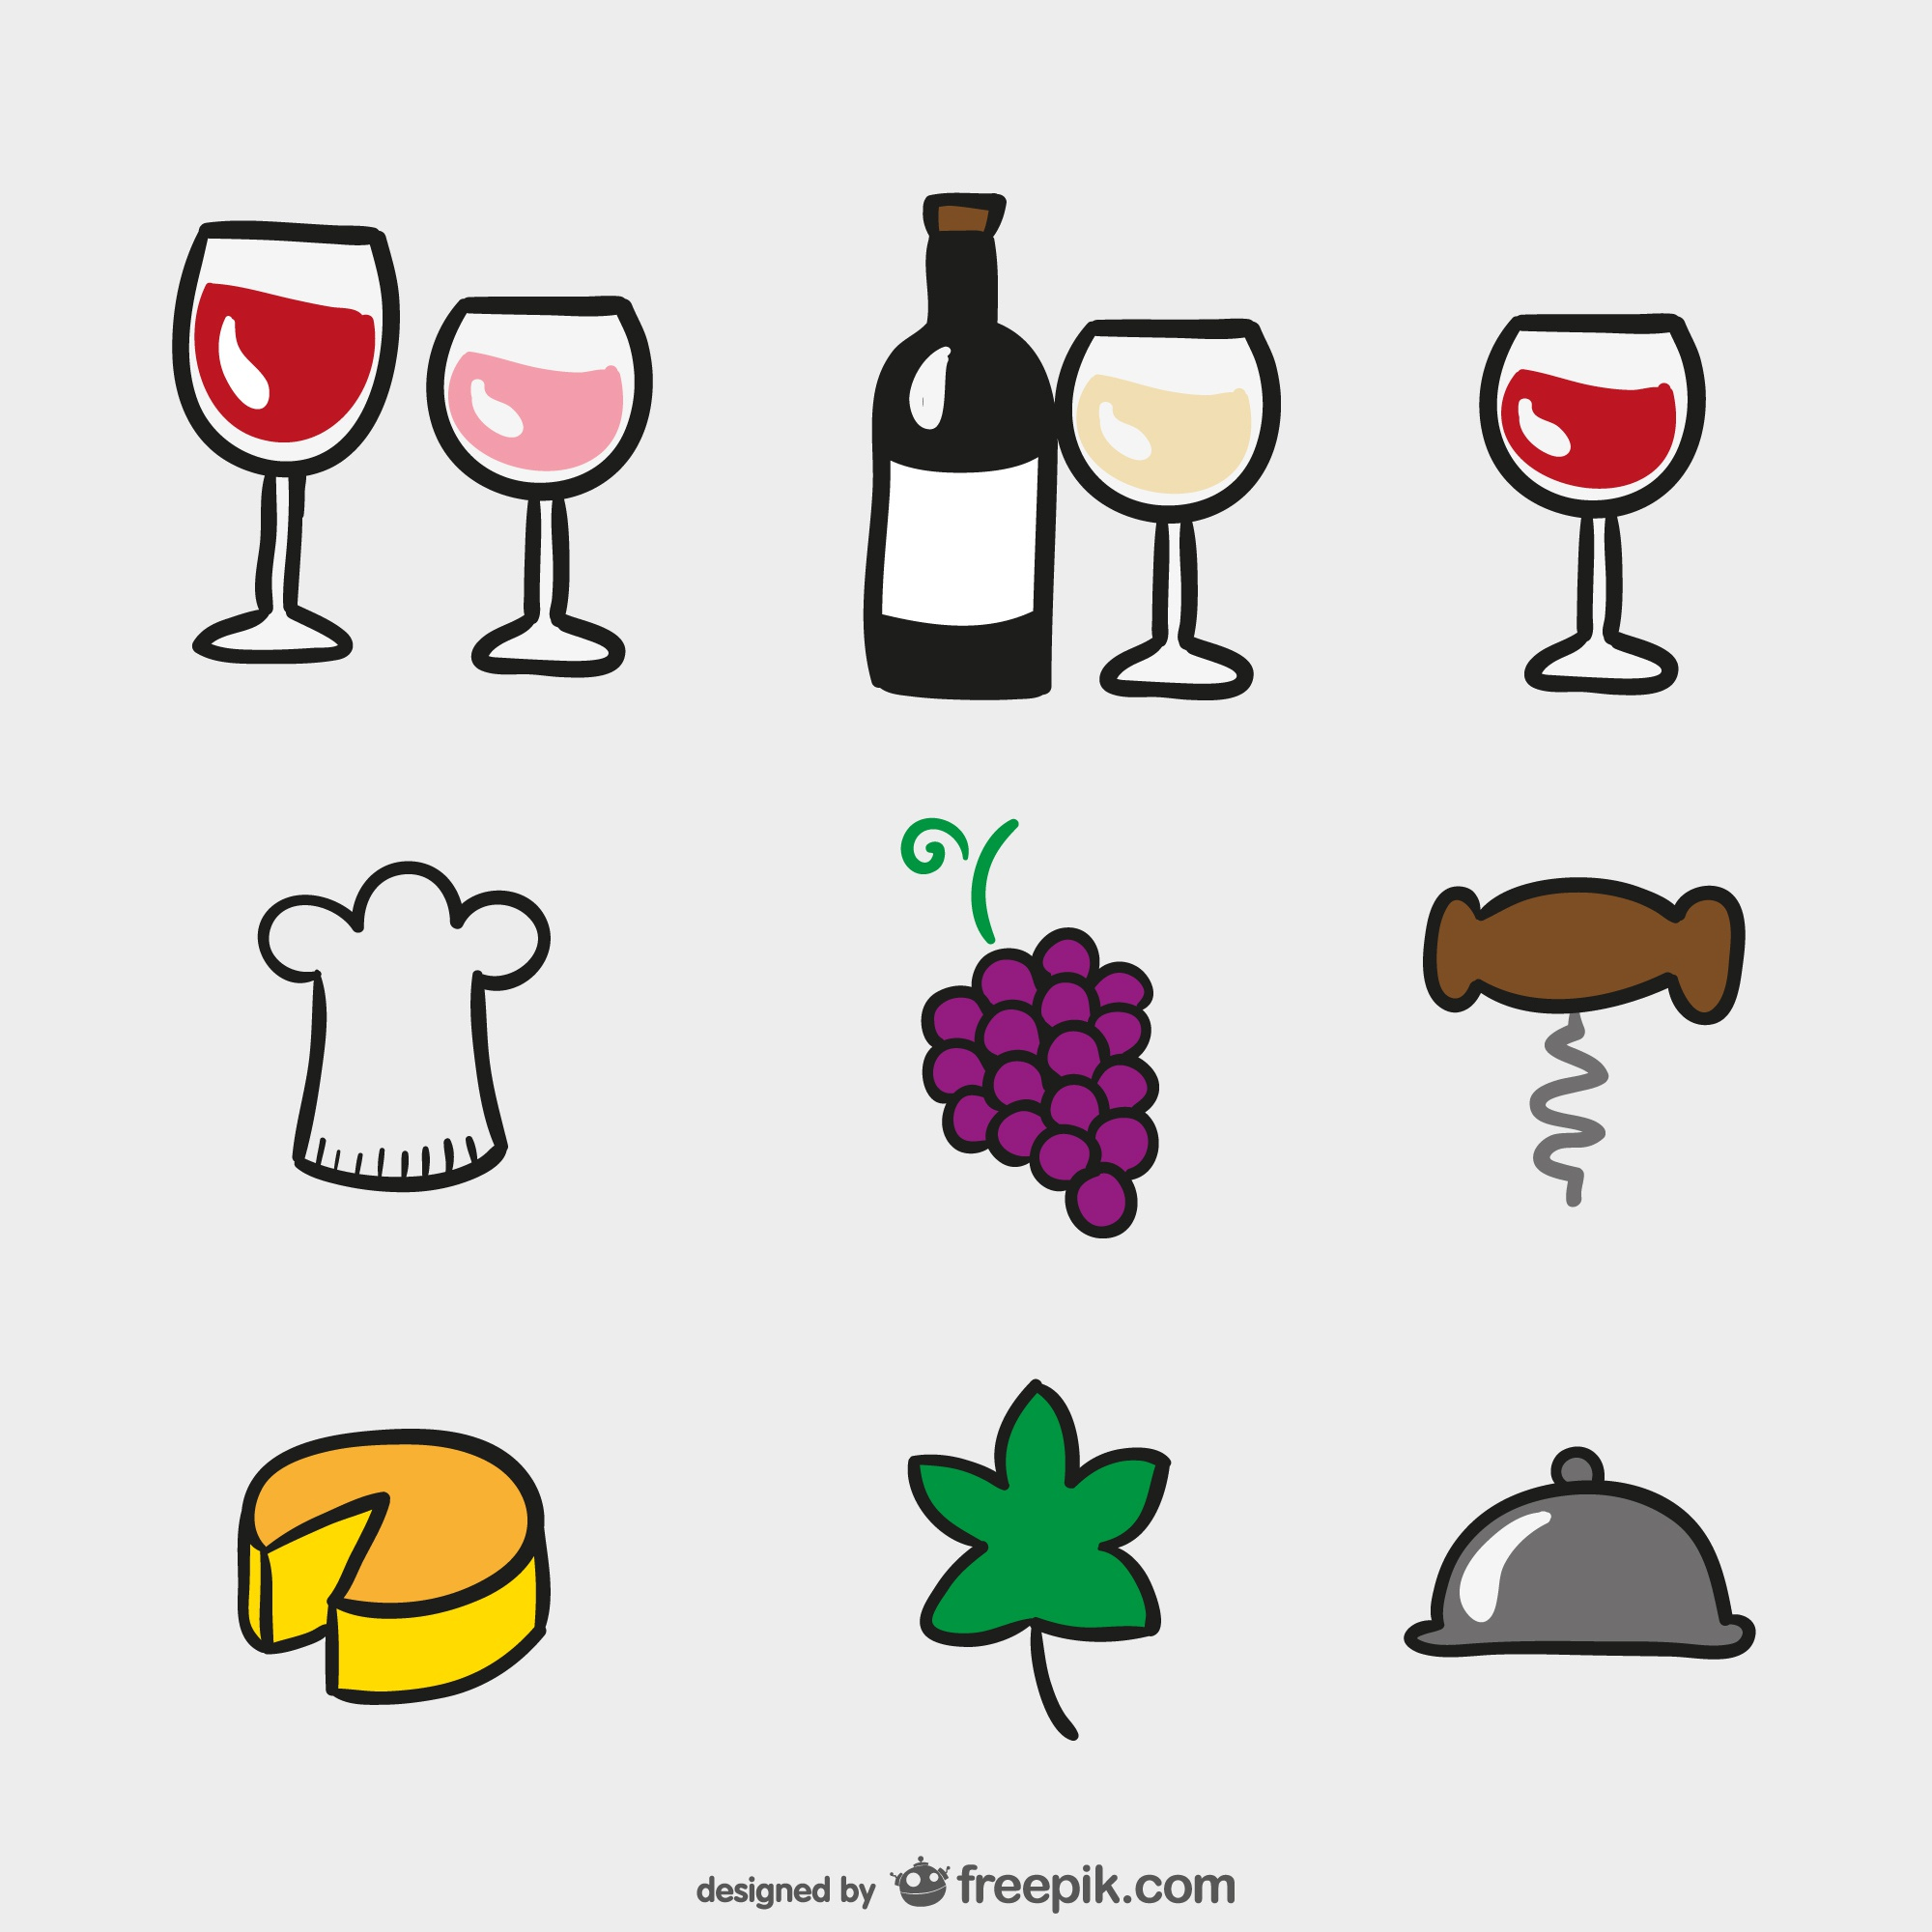 Cartoon icons of wine